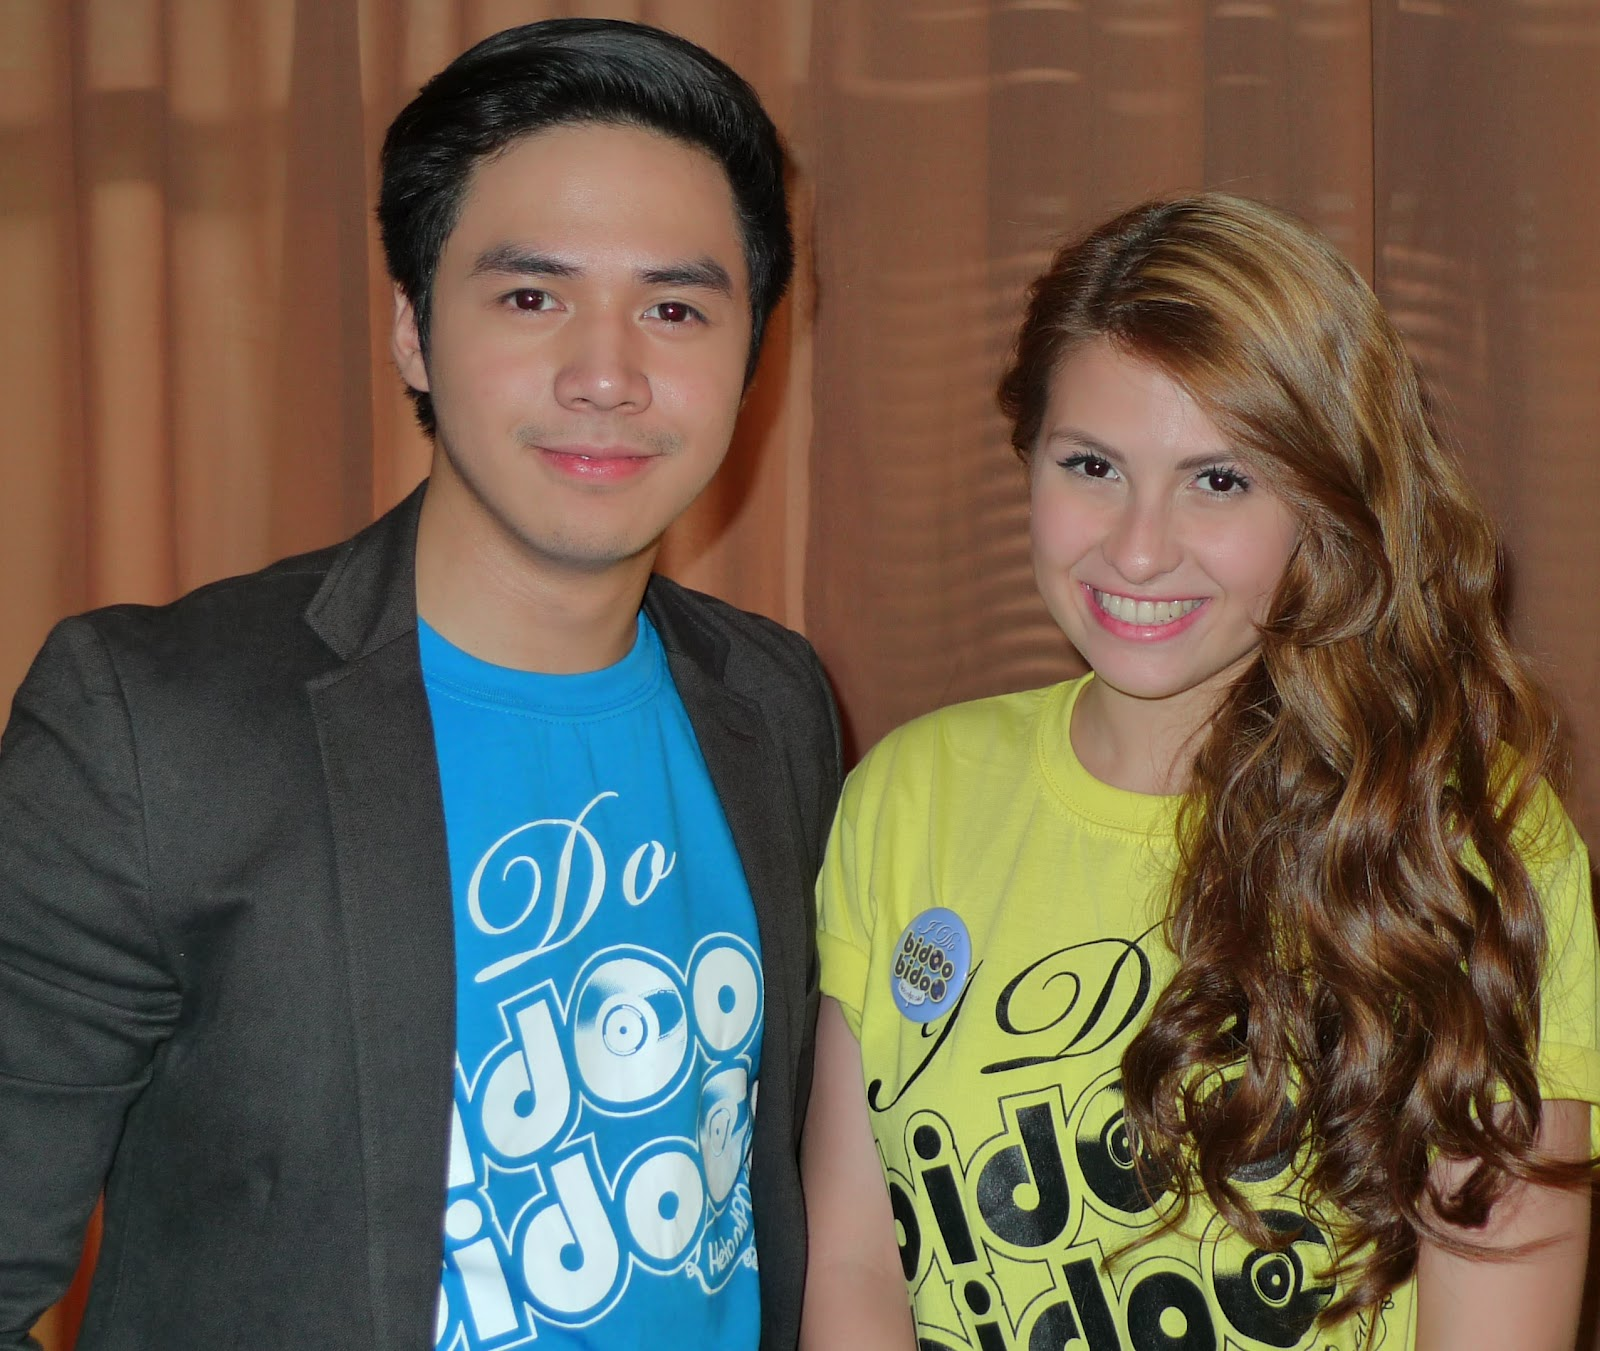 BWW Interviews: Sam Concepcion, Tippy Dos Santos Talk I DO BIDOO BIDOO, Secret Behind their Screen Chemistry & More!